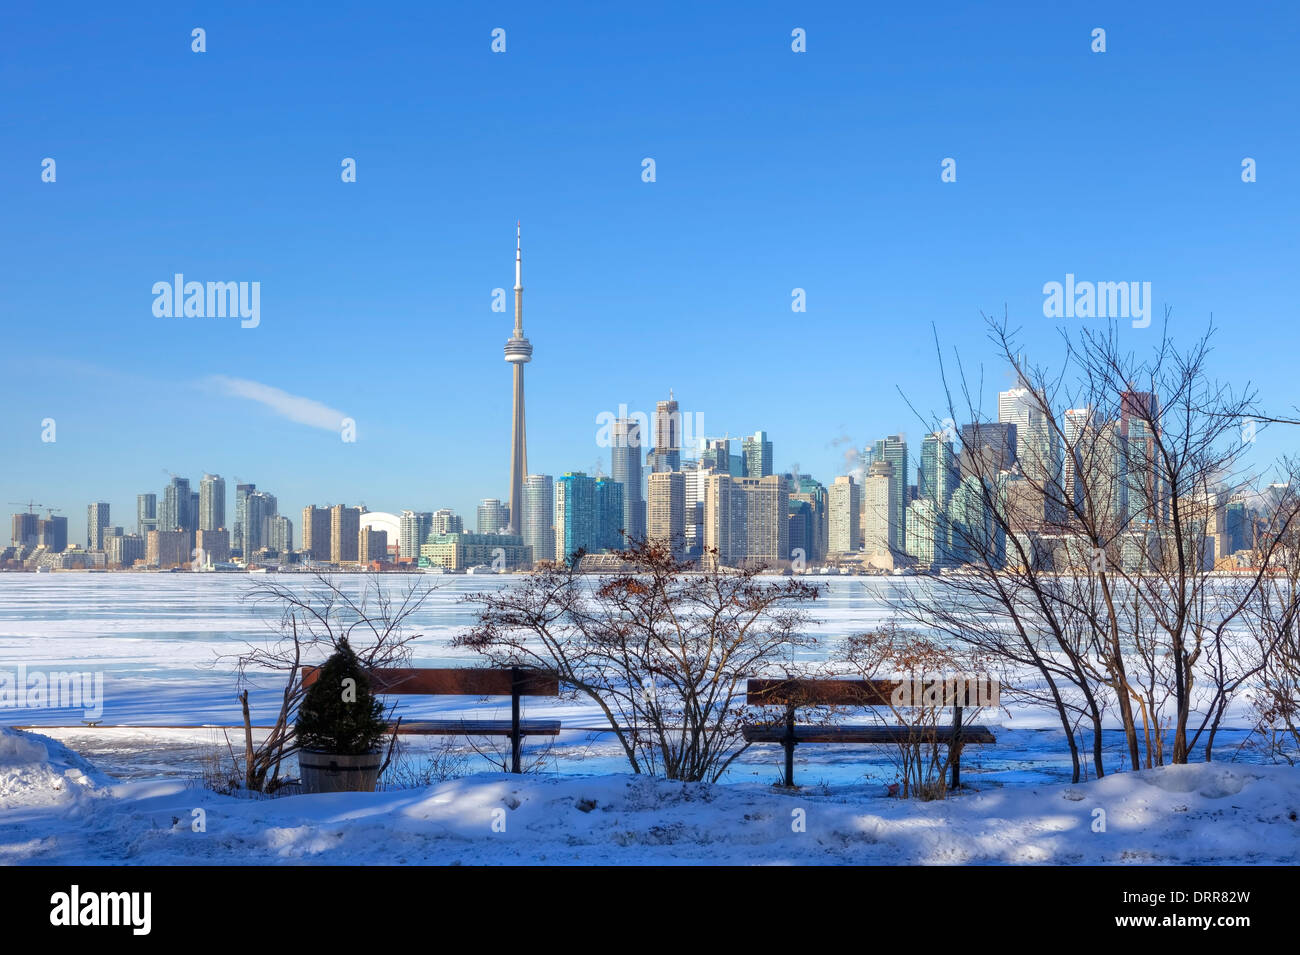 Downtown Toronto Lake Ontario Canada Stock Photos   Downtown Toronto ... 689470d125d